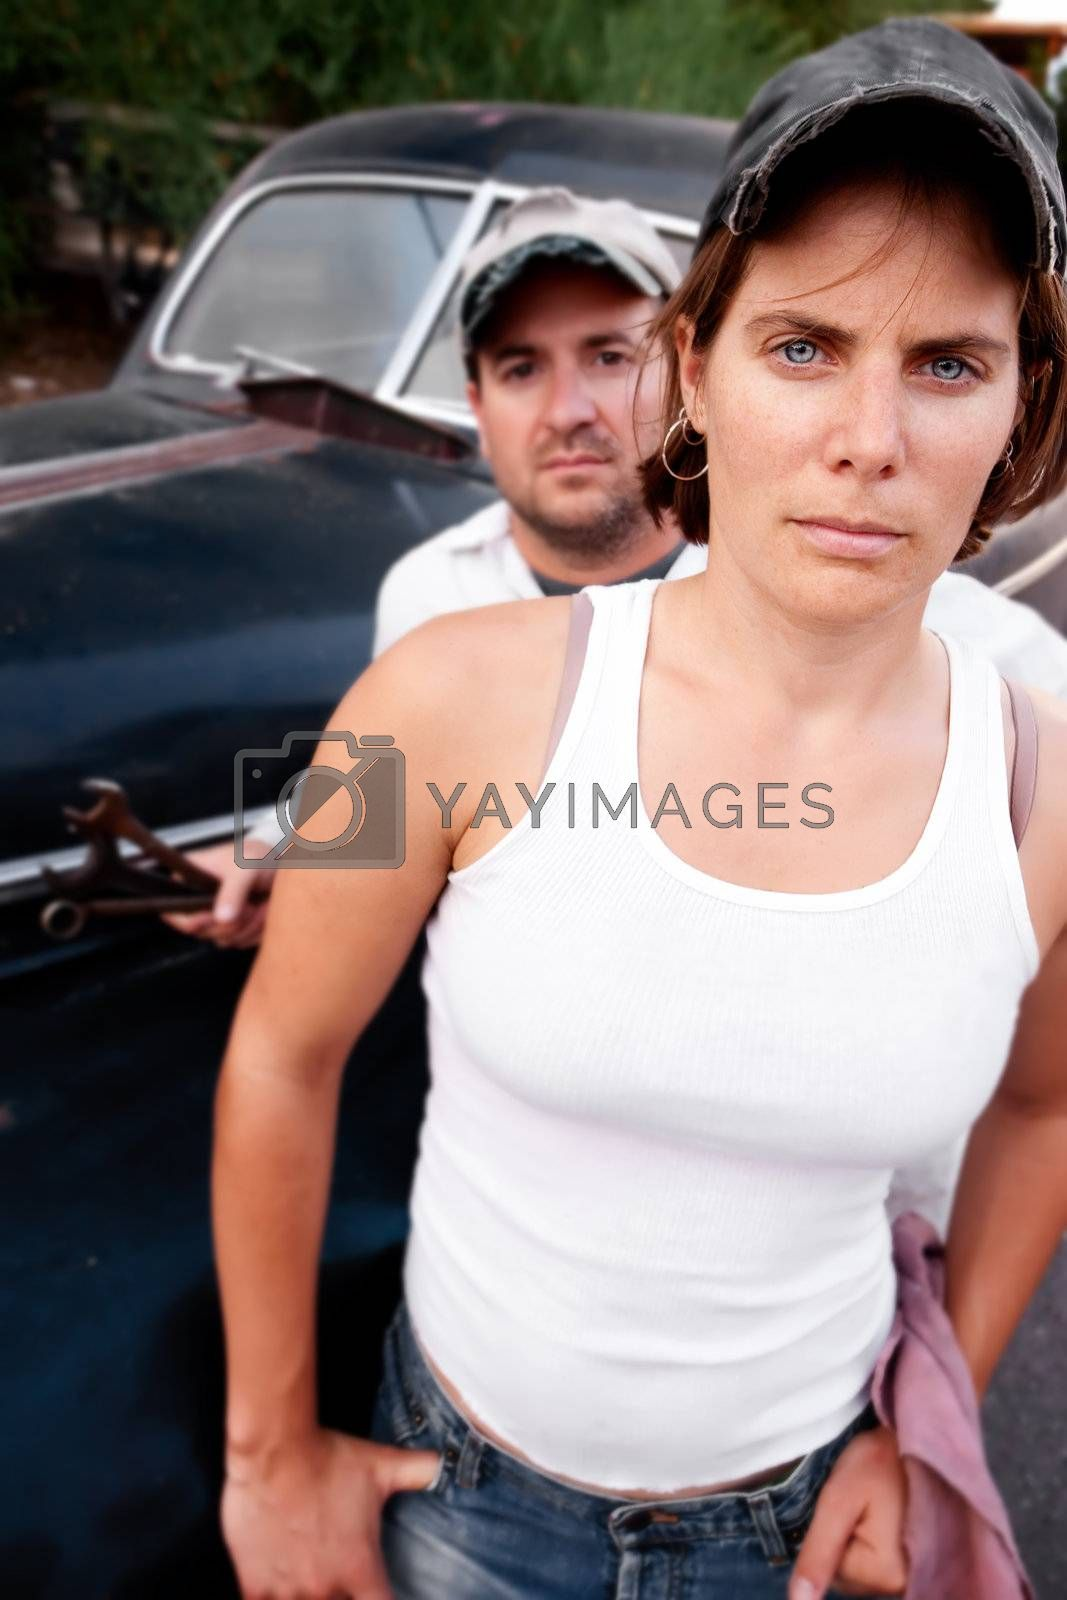 Royalty free image of Couple with Vintage Car by Creatista